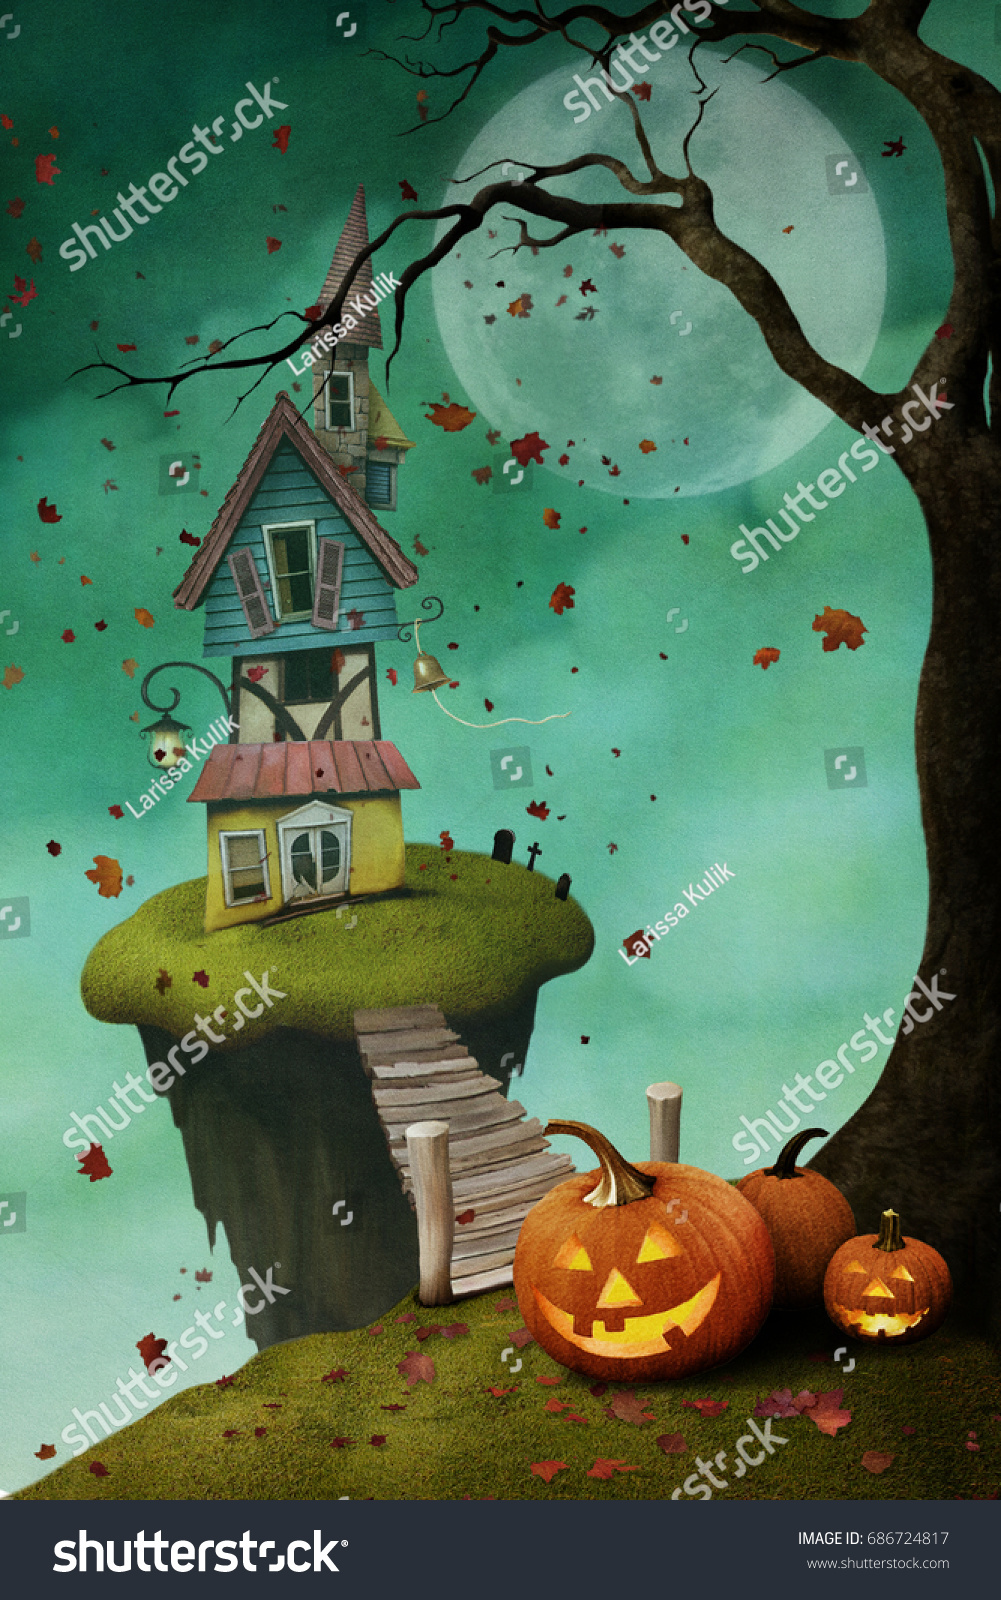 Holiday greeting card halloween house on stock illustration holiday greeting card for halloween with house on island and pumpkins kristyandbryce Gallery